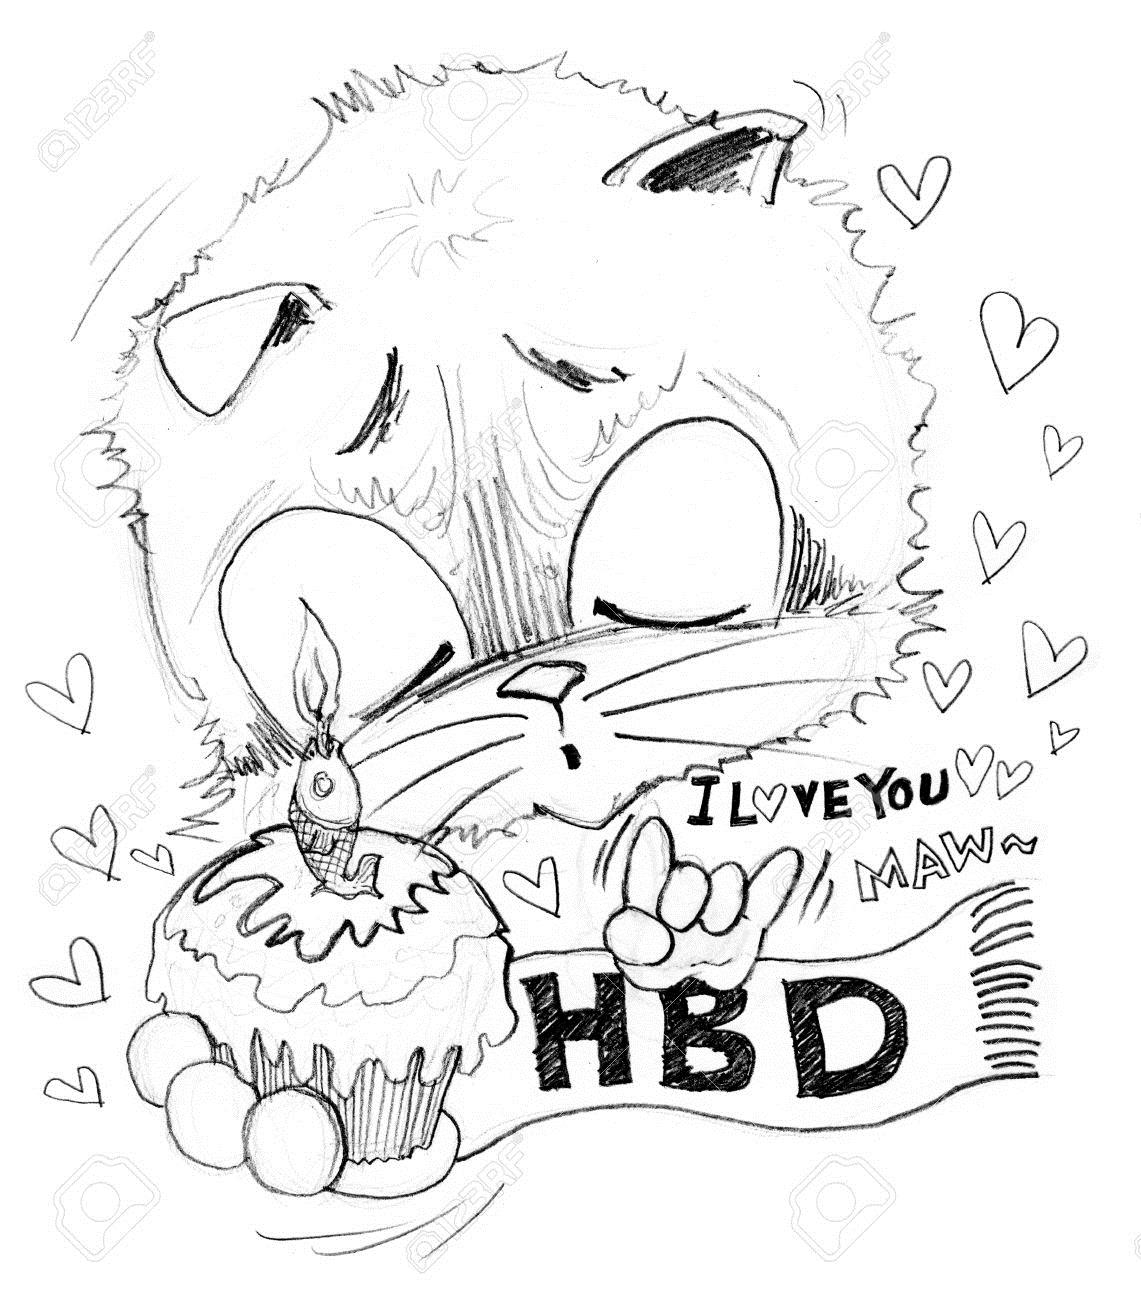 cute happy birthday drawings ; 73101182-happy-birthday-and-i-love-you-he-surprise-with-girl-friend-very-cute-acting-cat-cartoon-cute-charact-Stock-Photo